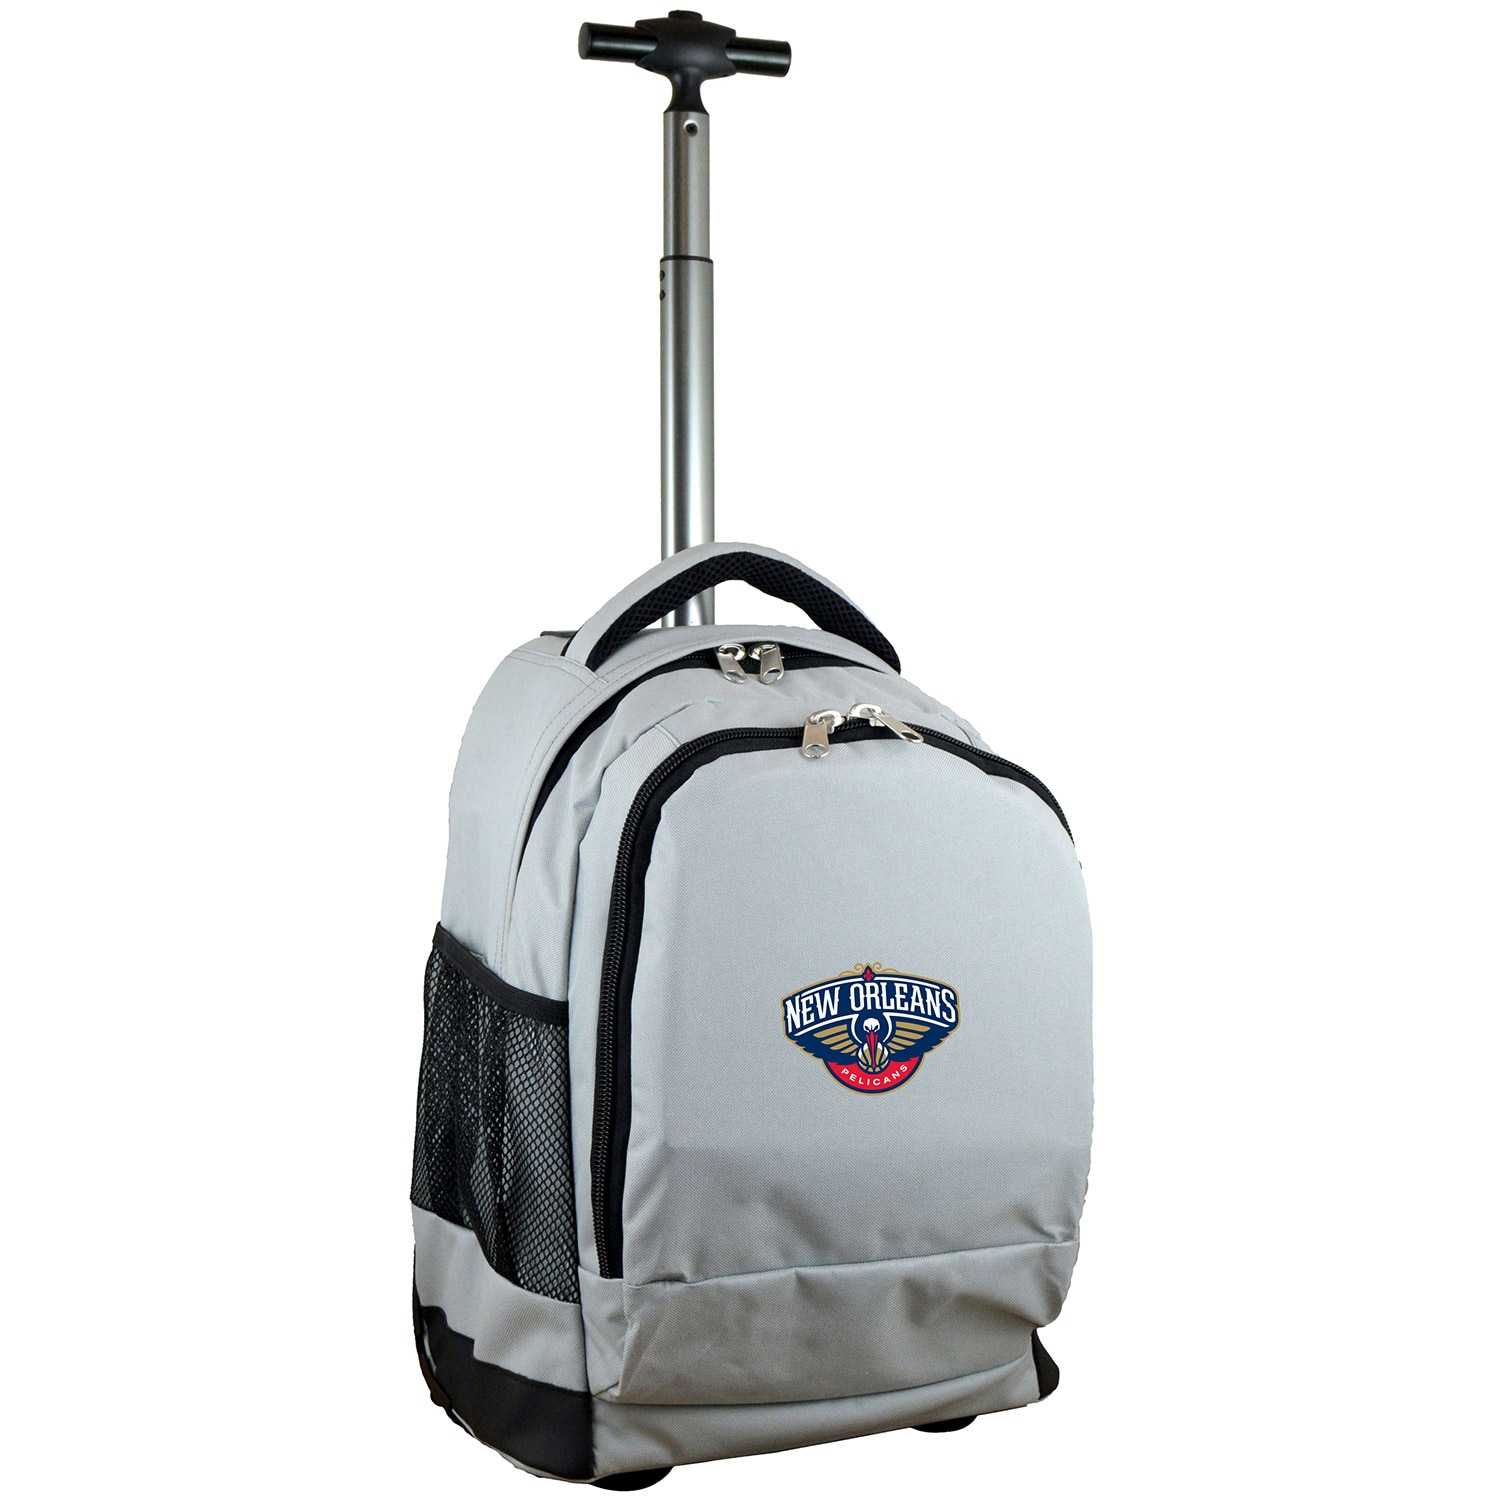 New Orleans Pelicans 19'' Premium Wheeled Backpack - Gray